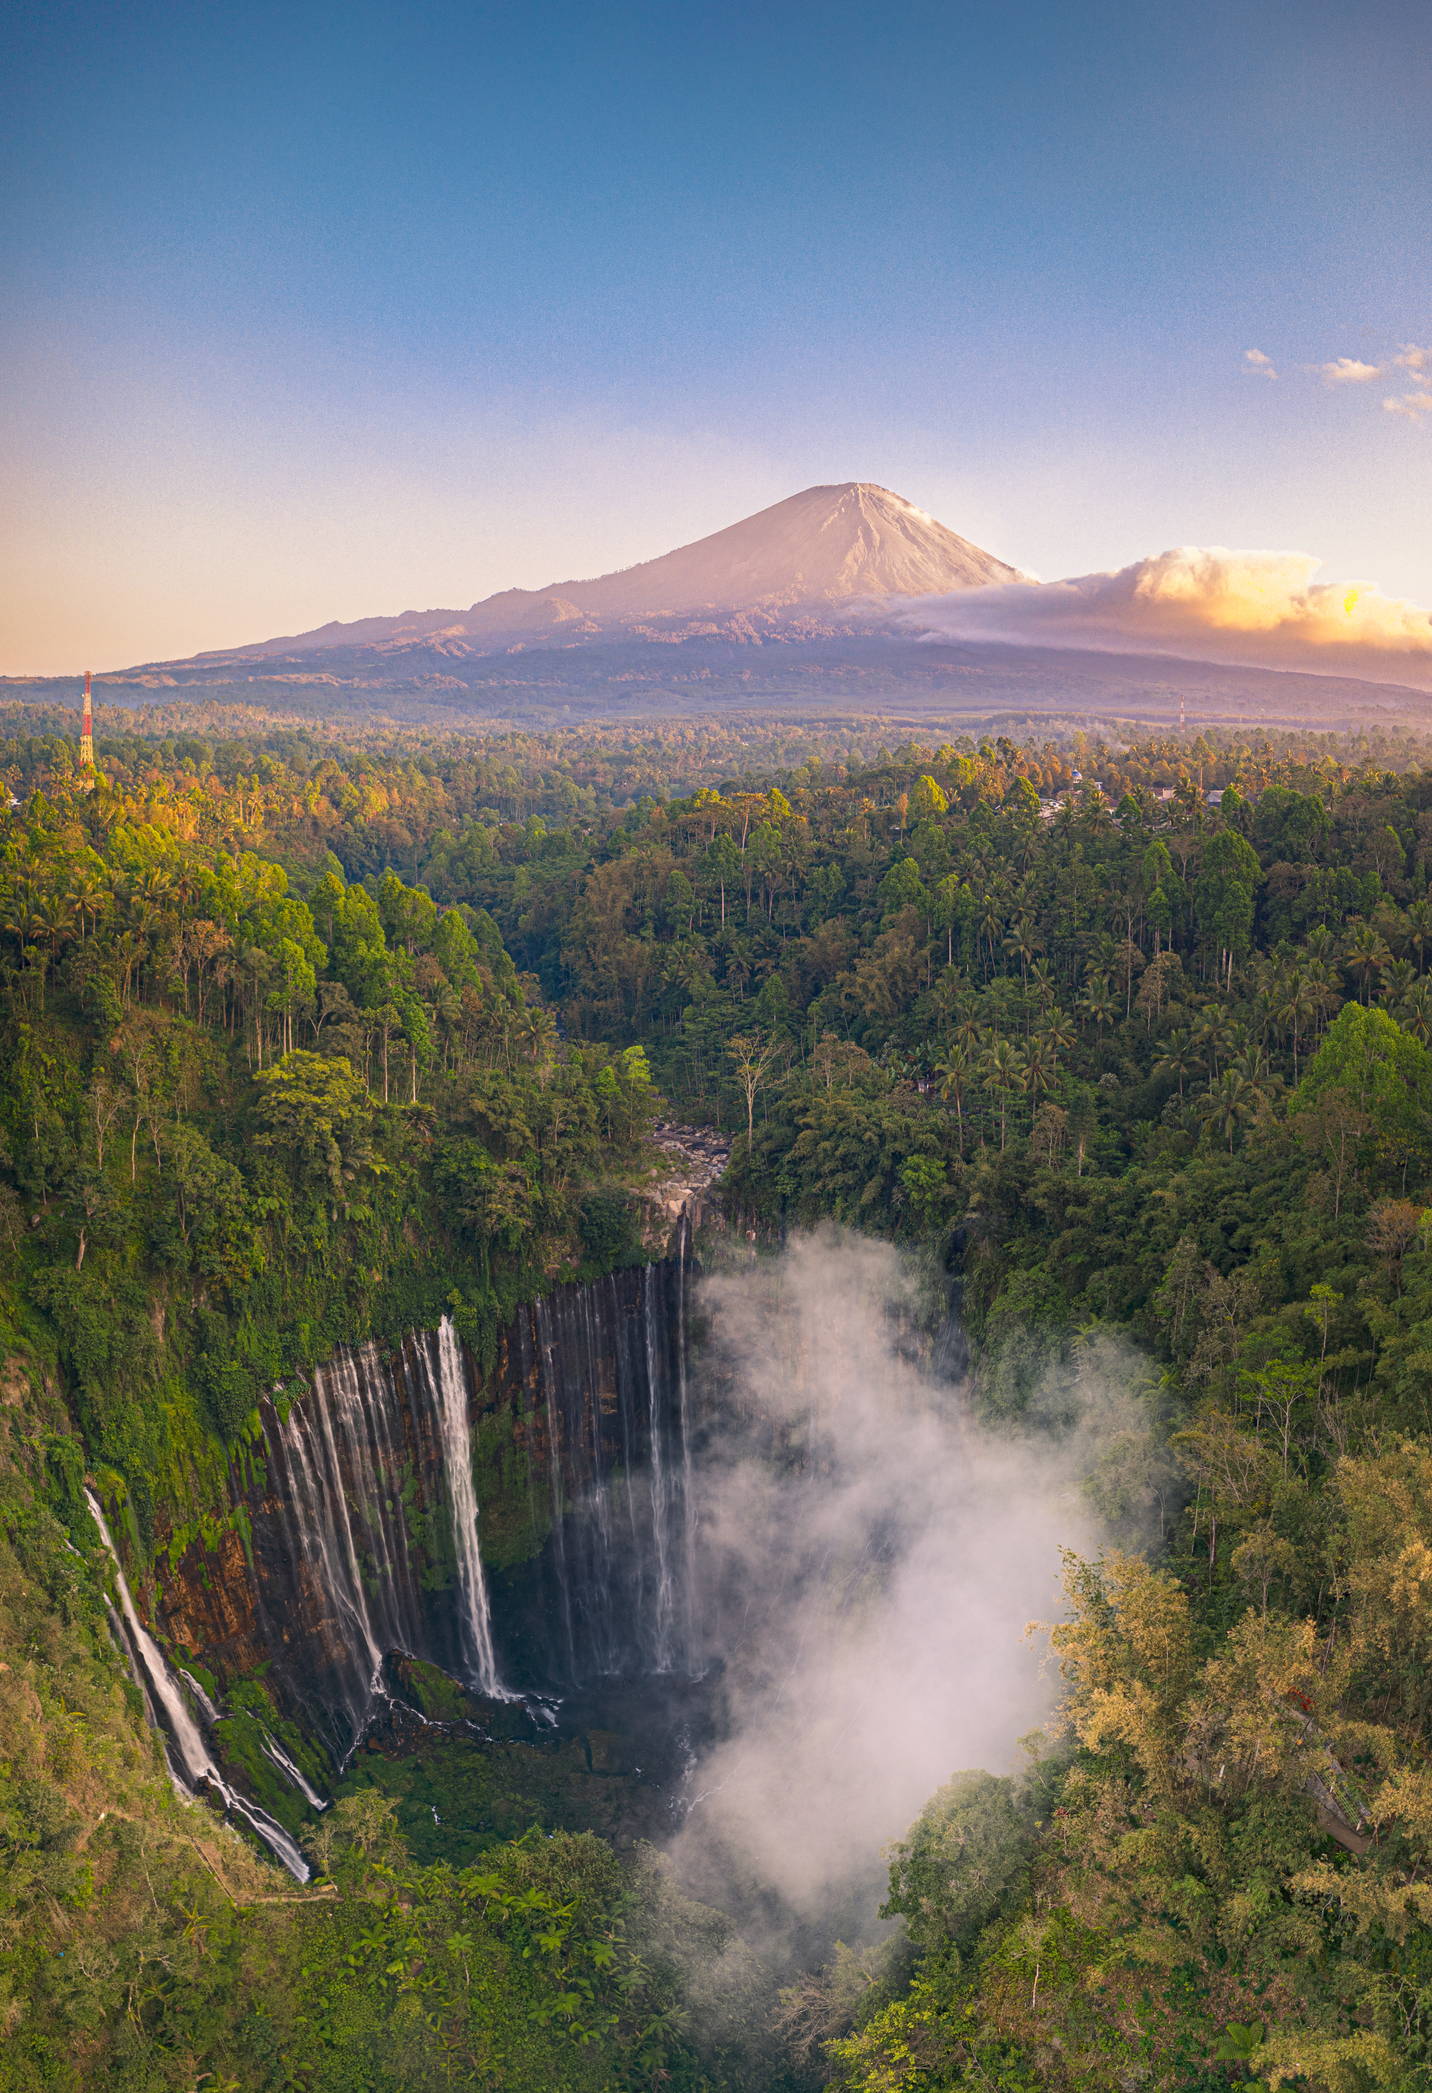 Aerial view of Tumpak Sewu Waterfall with Mount Semeru in the background in early morning sunrise time, East Java, Indonesia.